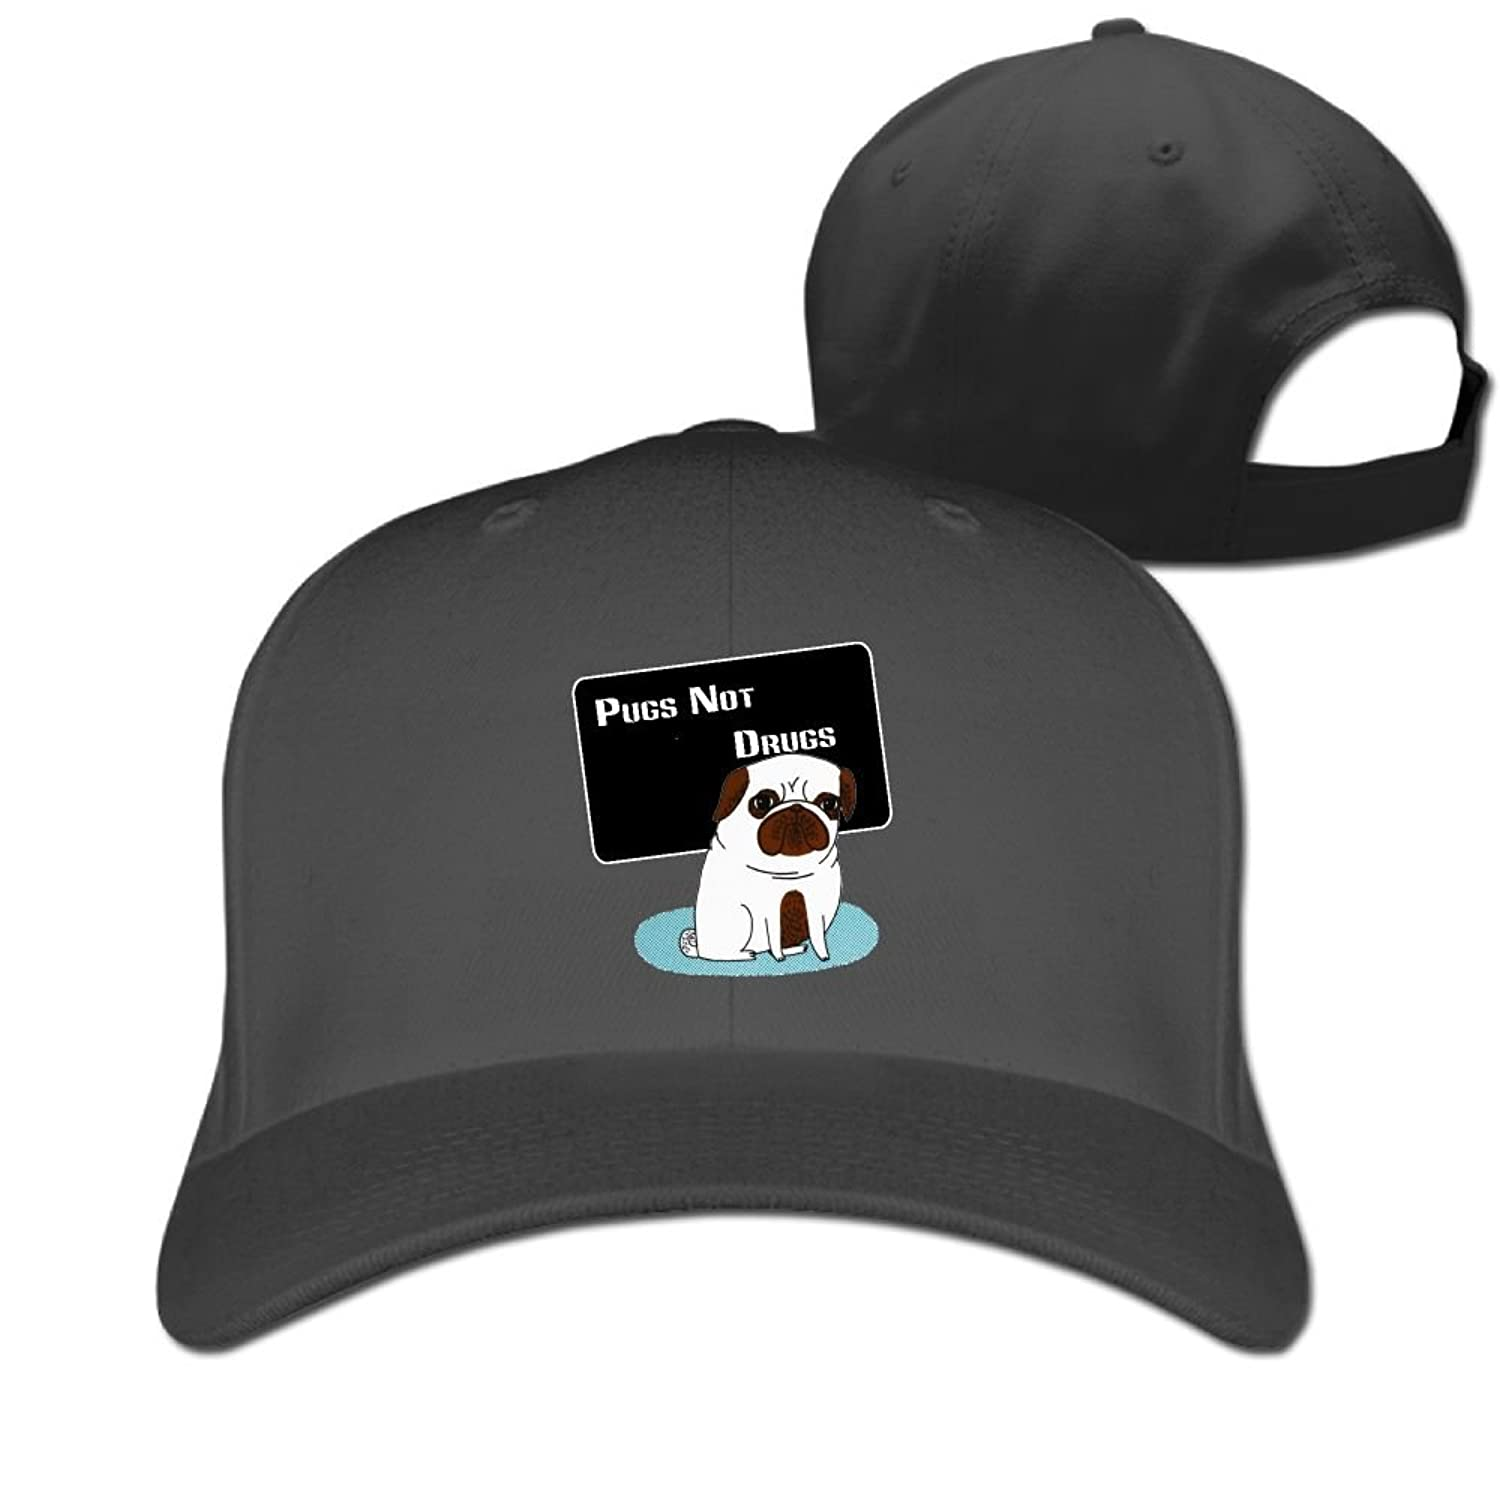 WHa12 Cap Pugs Not Drugs Men's Cool Sandwich Baseball Cap